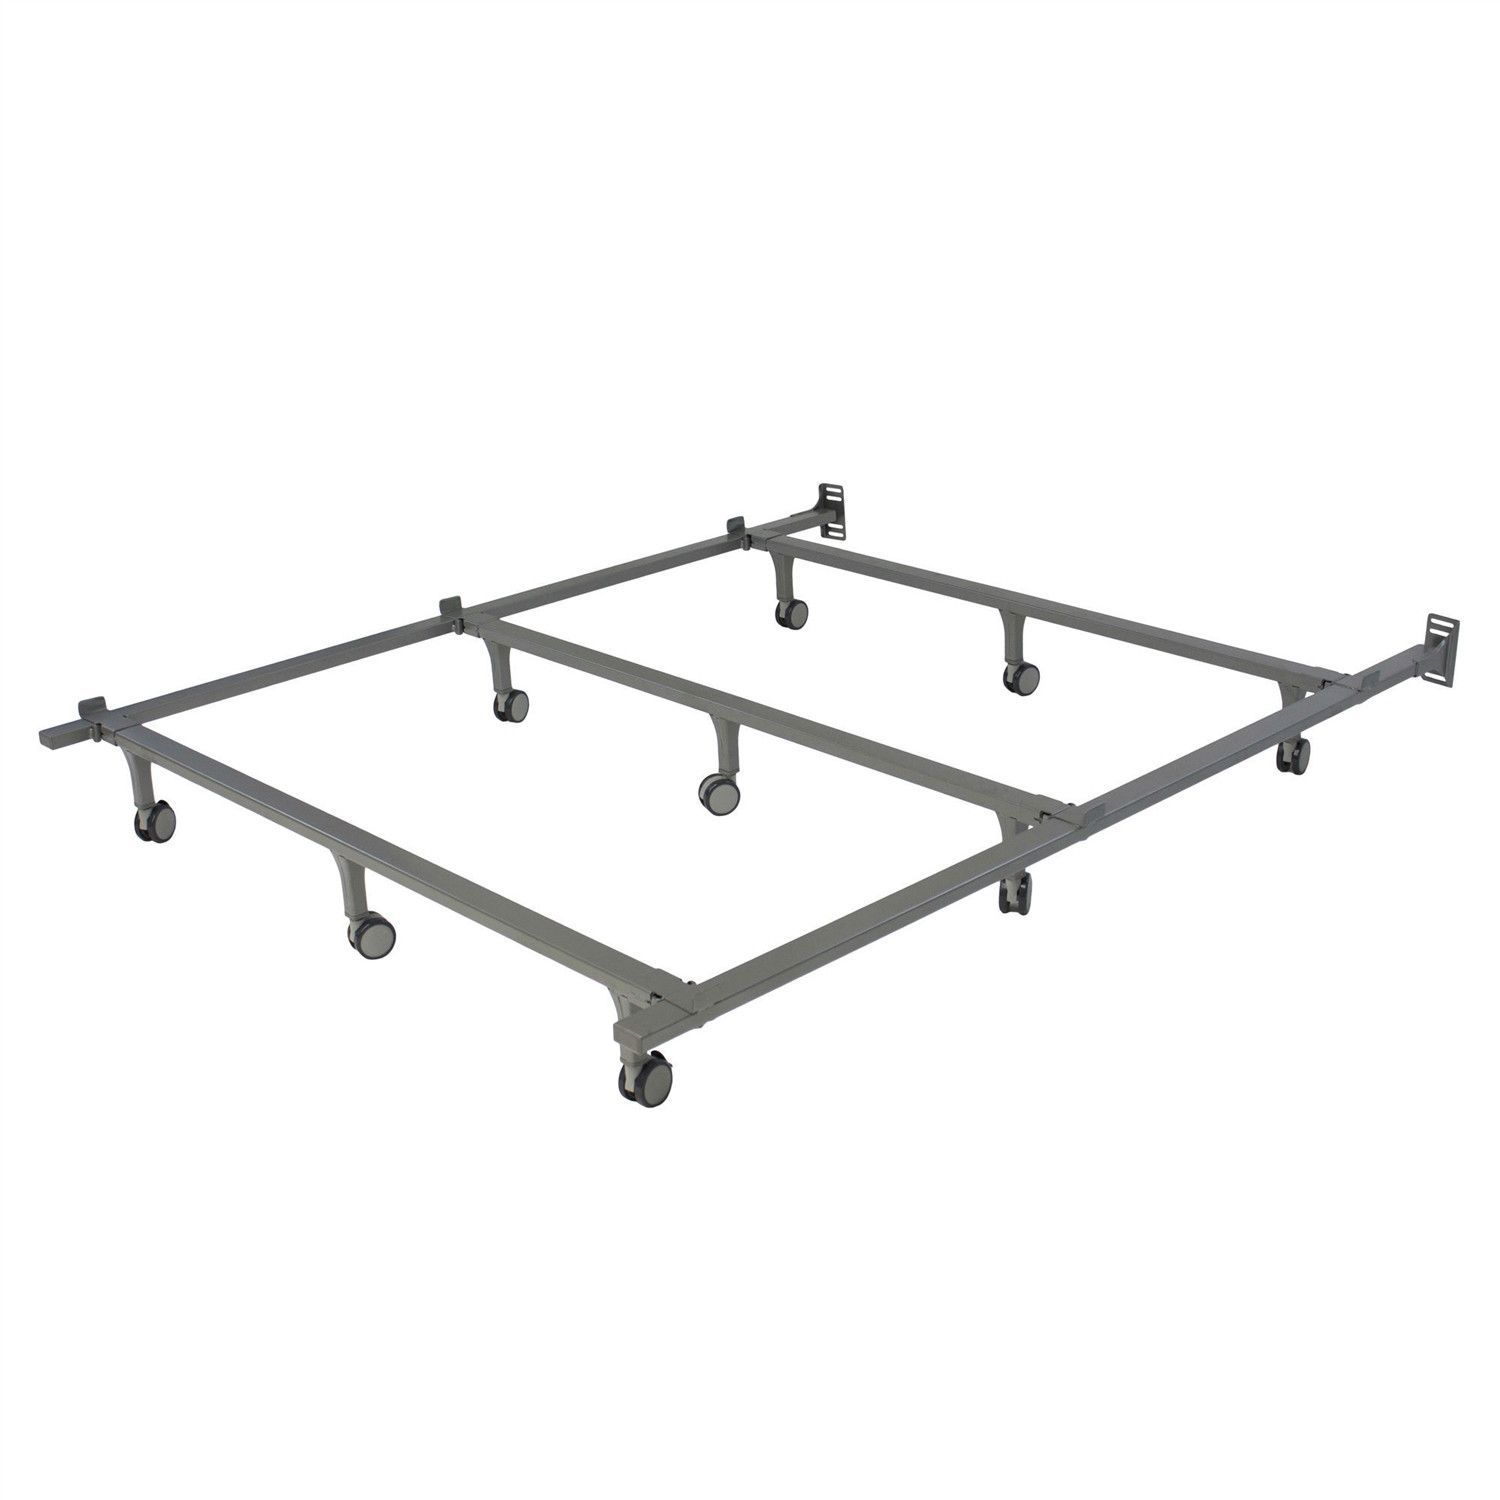 Queen size 9Leg Metal Bed Frame with Rug Rollers Caster Wheels